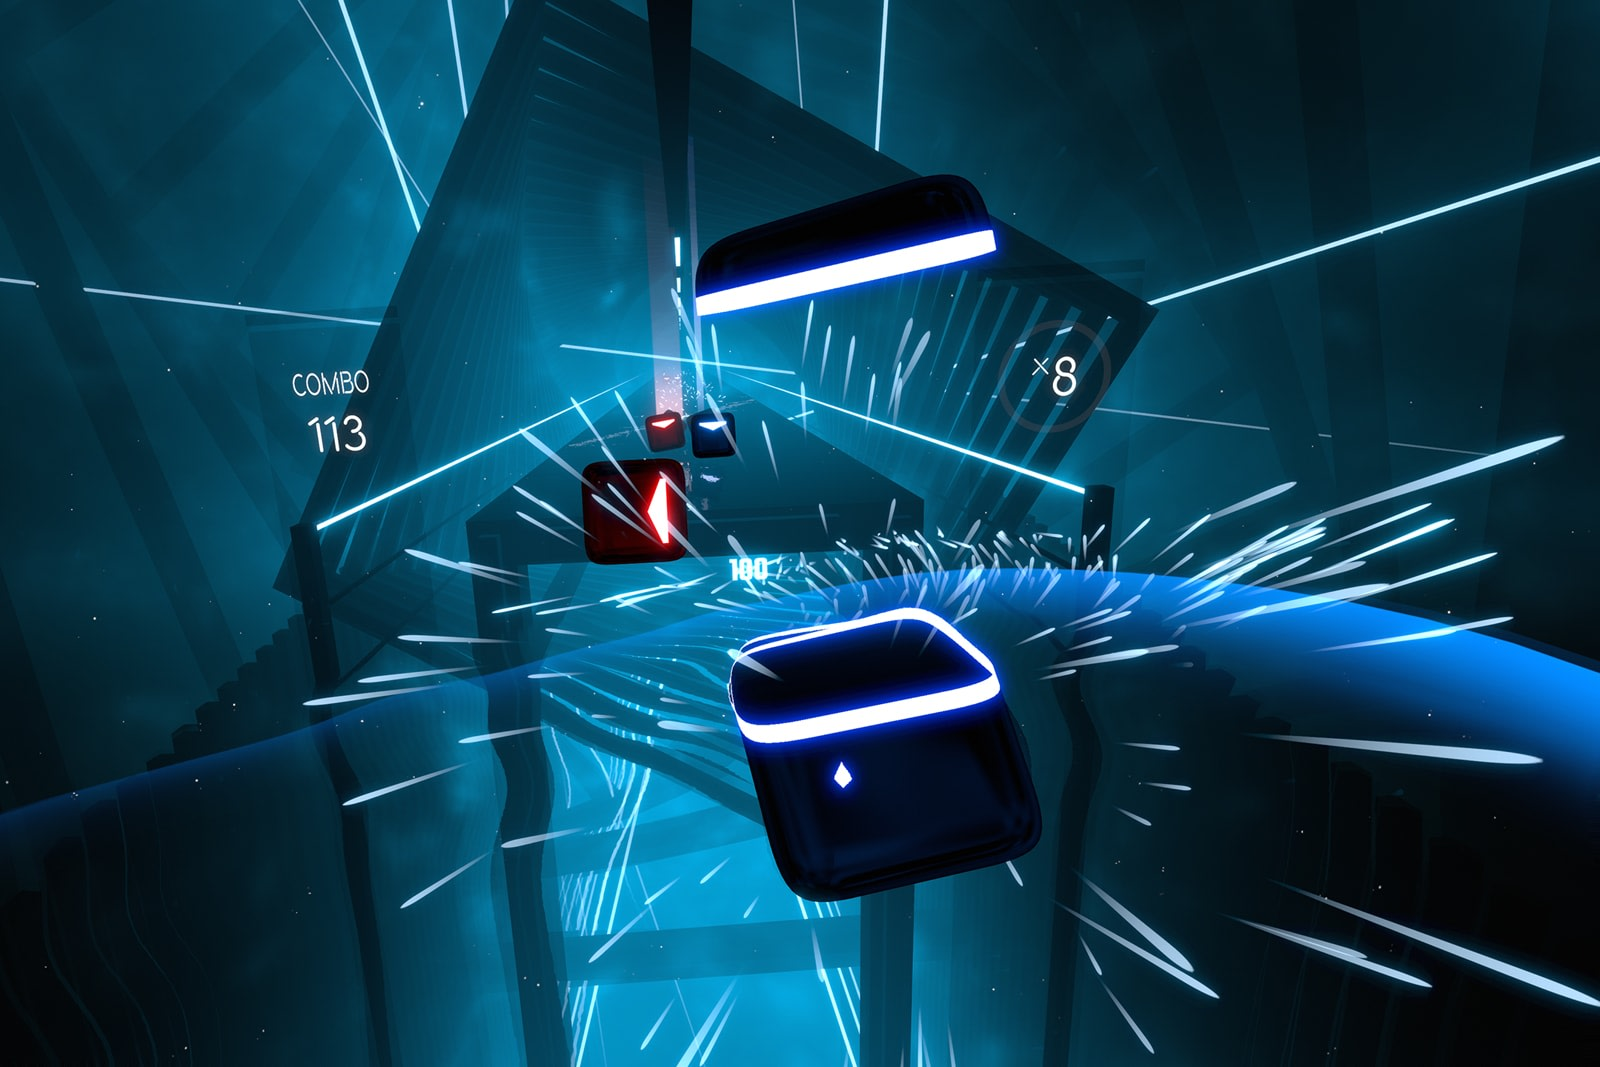 Beat Saber' will be available for Oculus Quest on day one